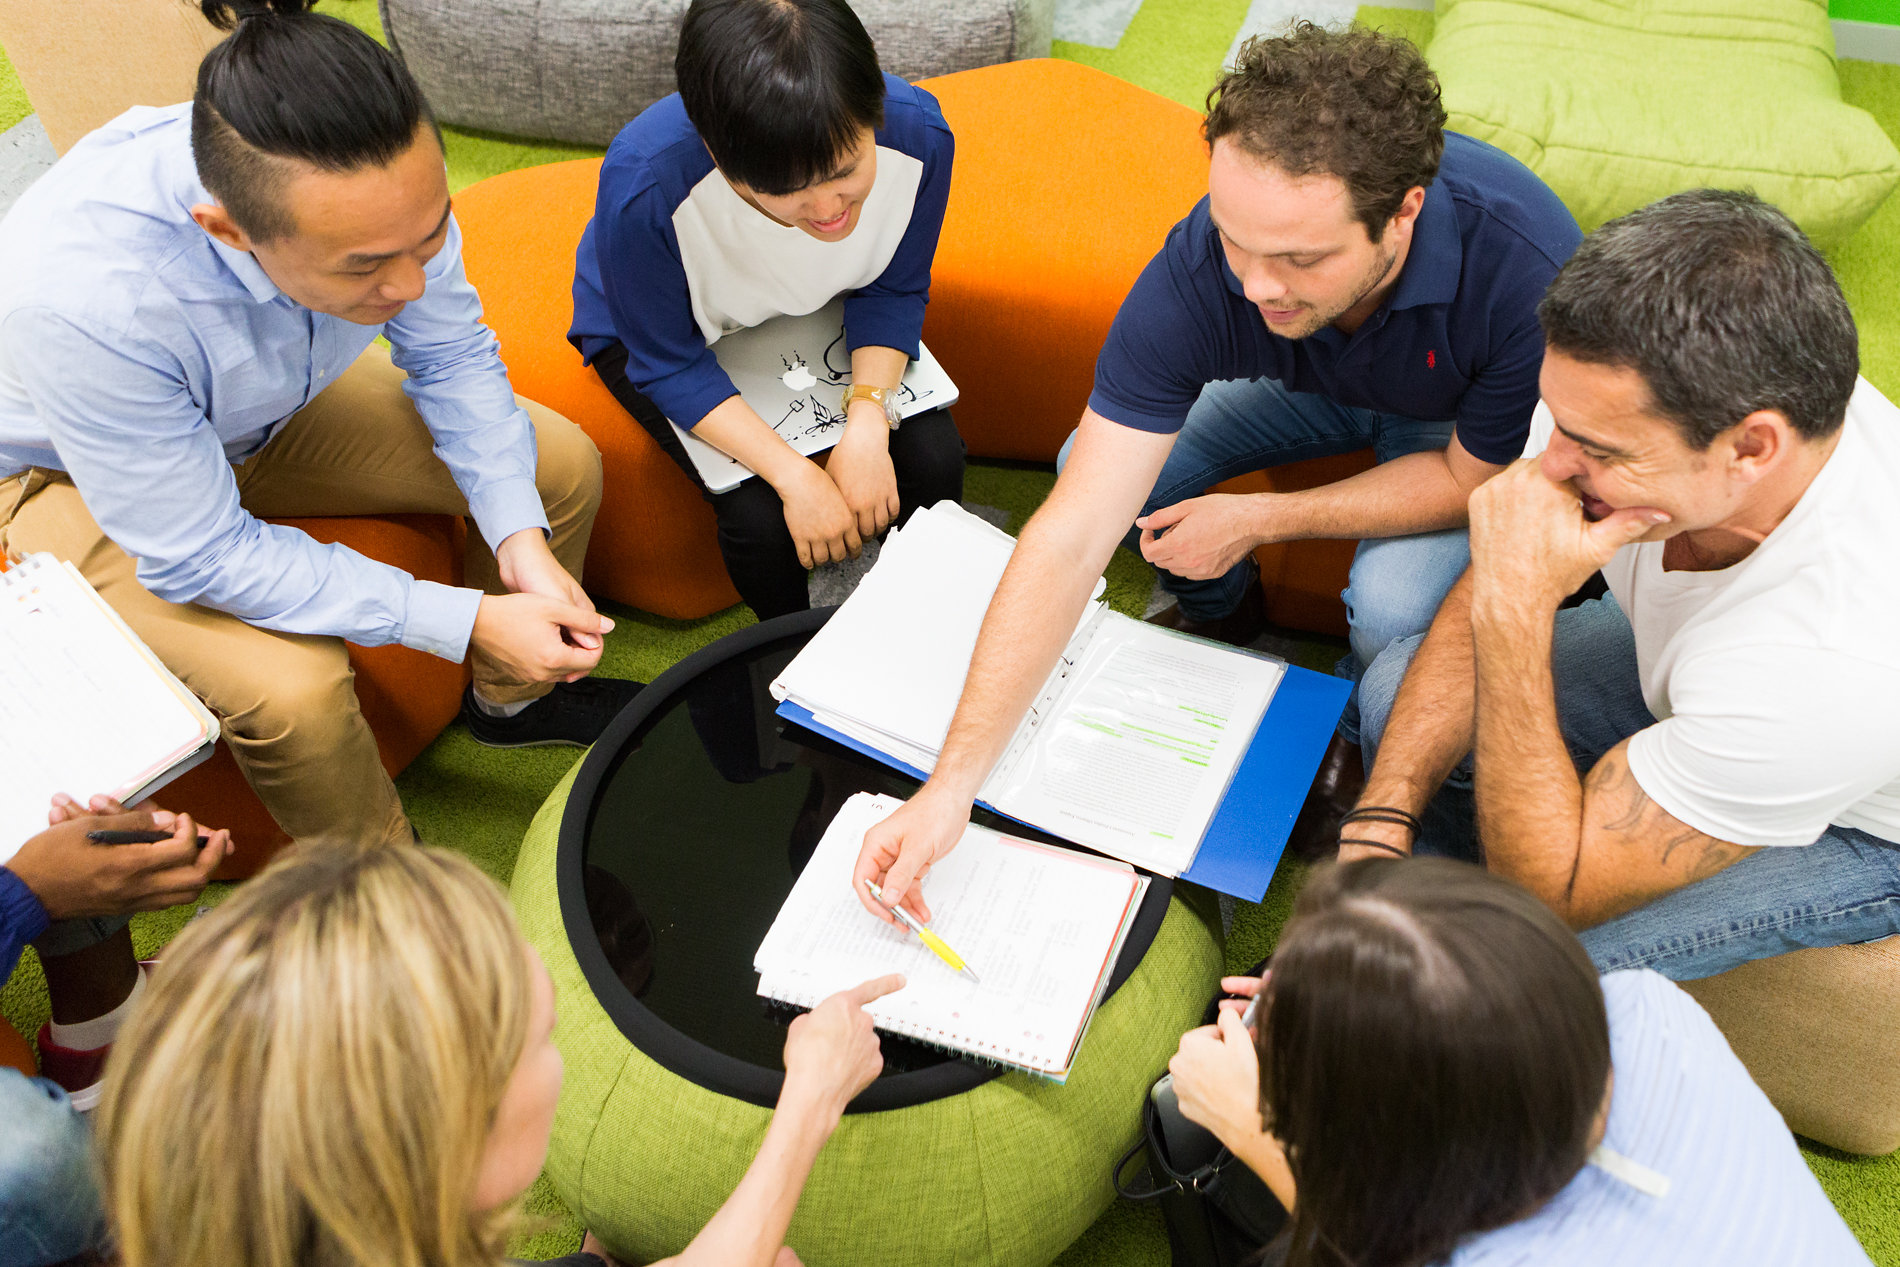 Making sense of group work with SPARKPlus | 20 Aug